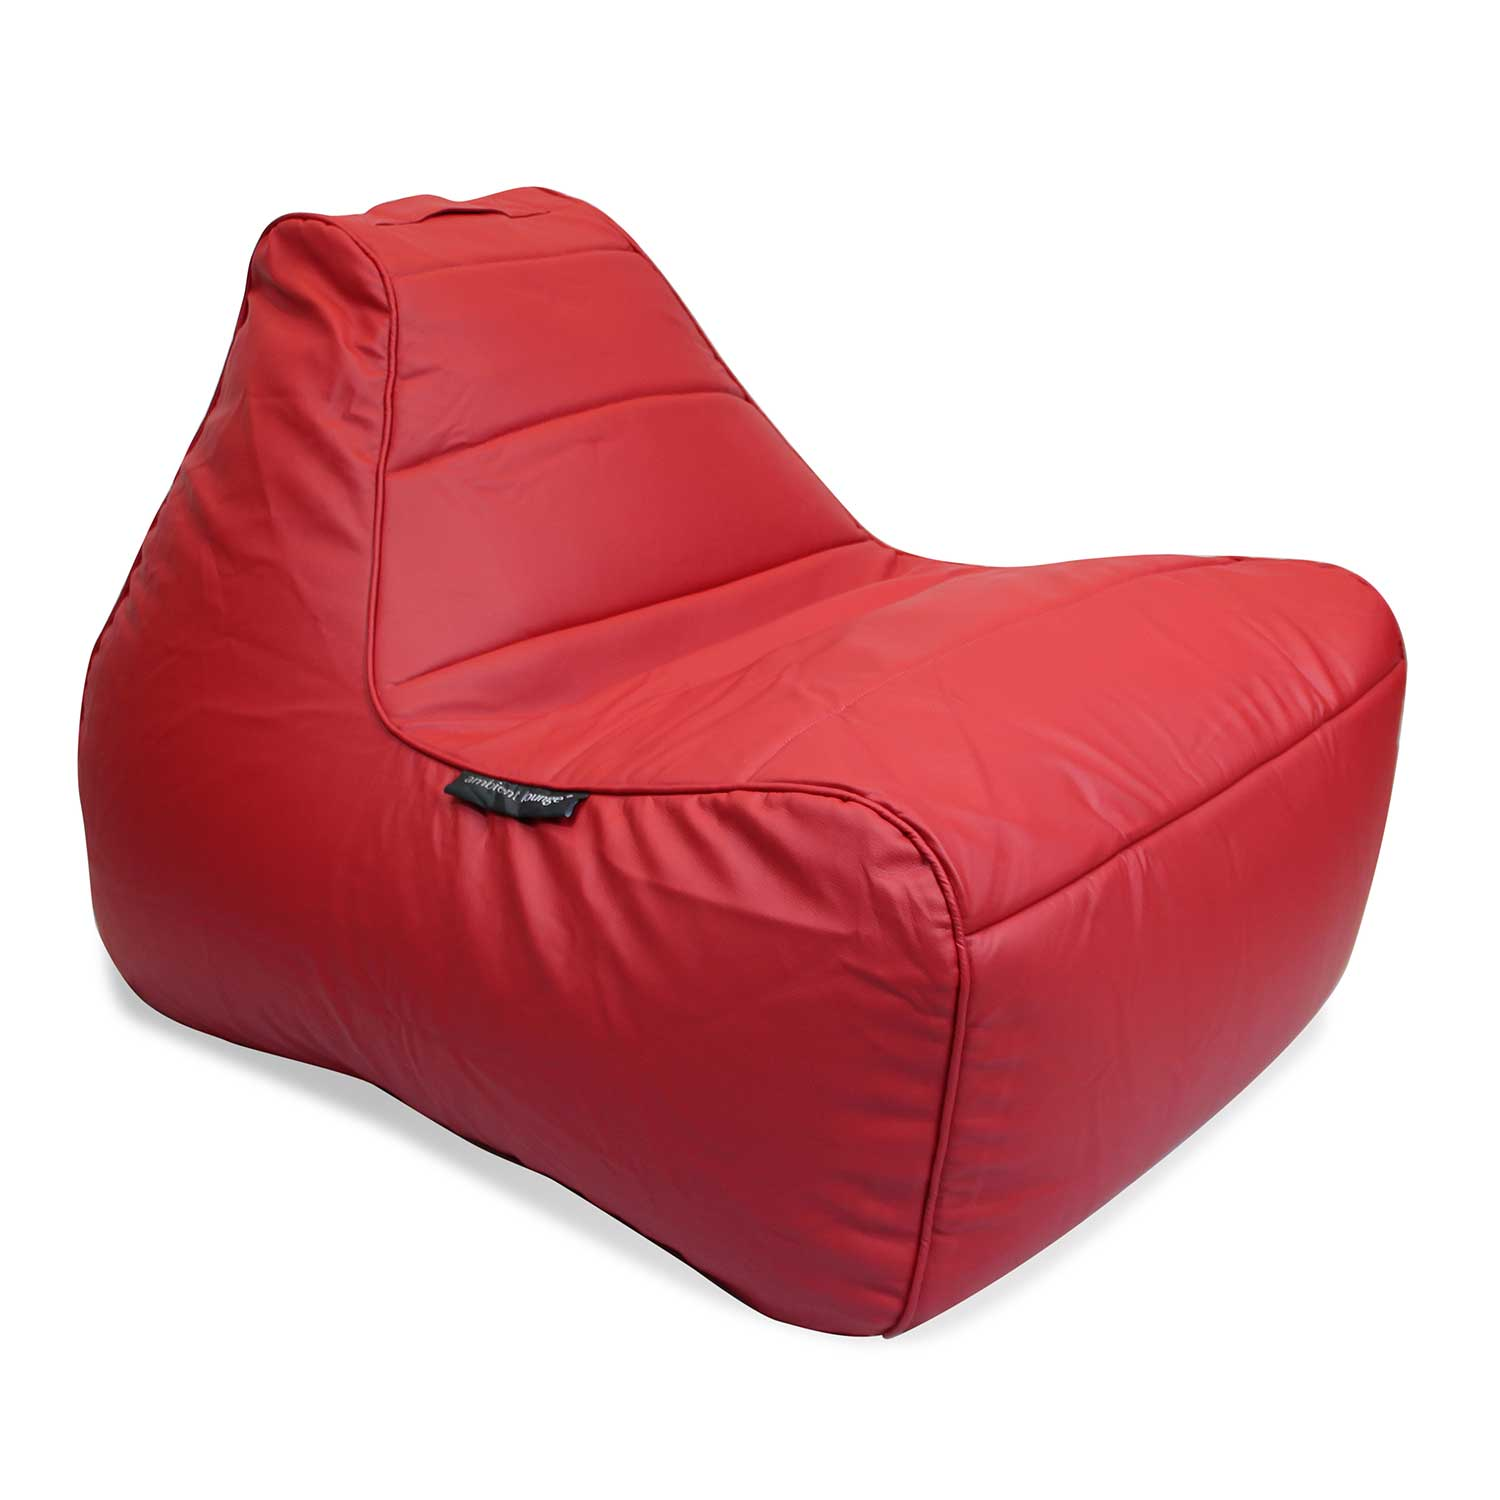 lounge chair covers australia swivel club chairs for sale mode red lounger bean bag tivoli